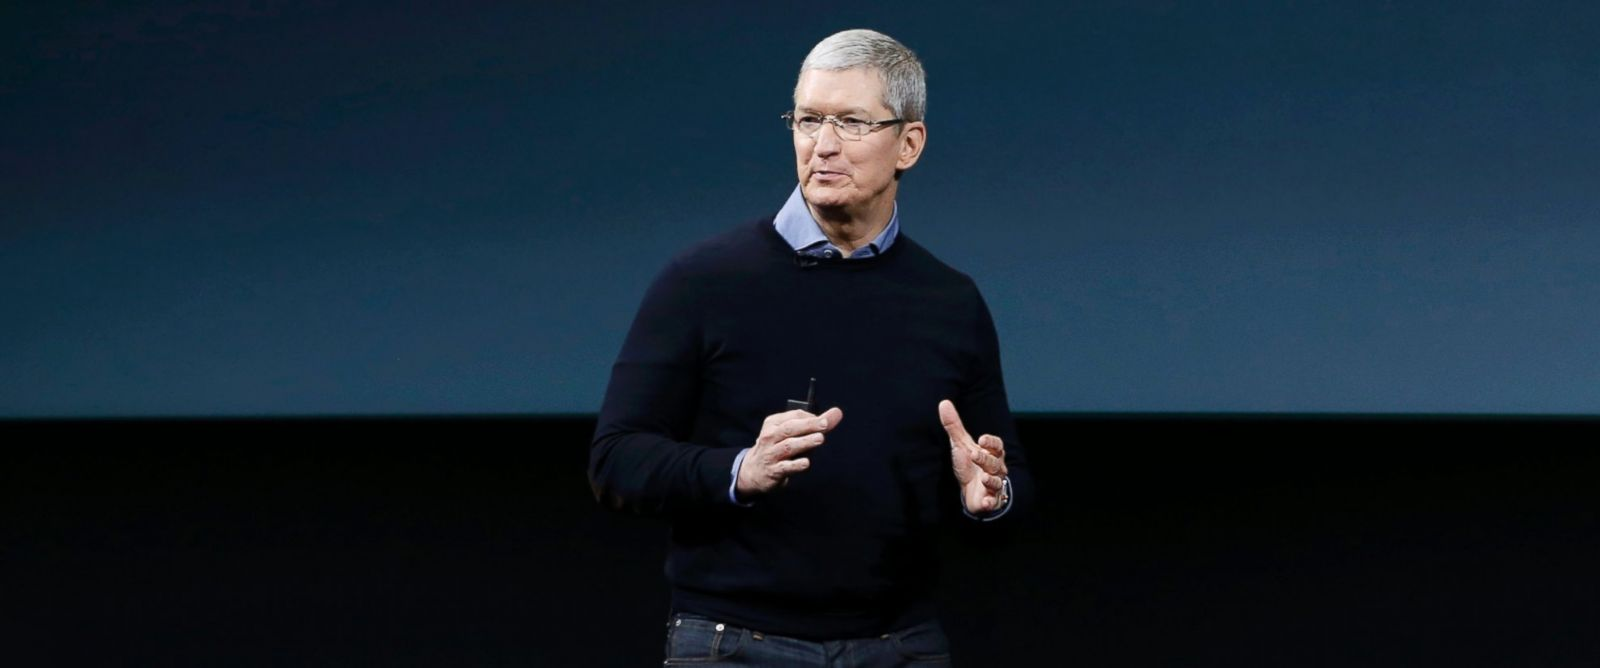 PHOTO: Apple CEO Tim Cook speaks during an event at Apple headquarters, March 21, 2016, in Cupertino, California.